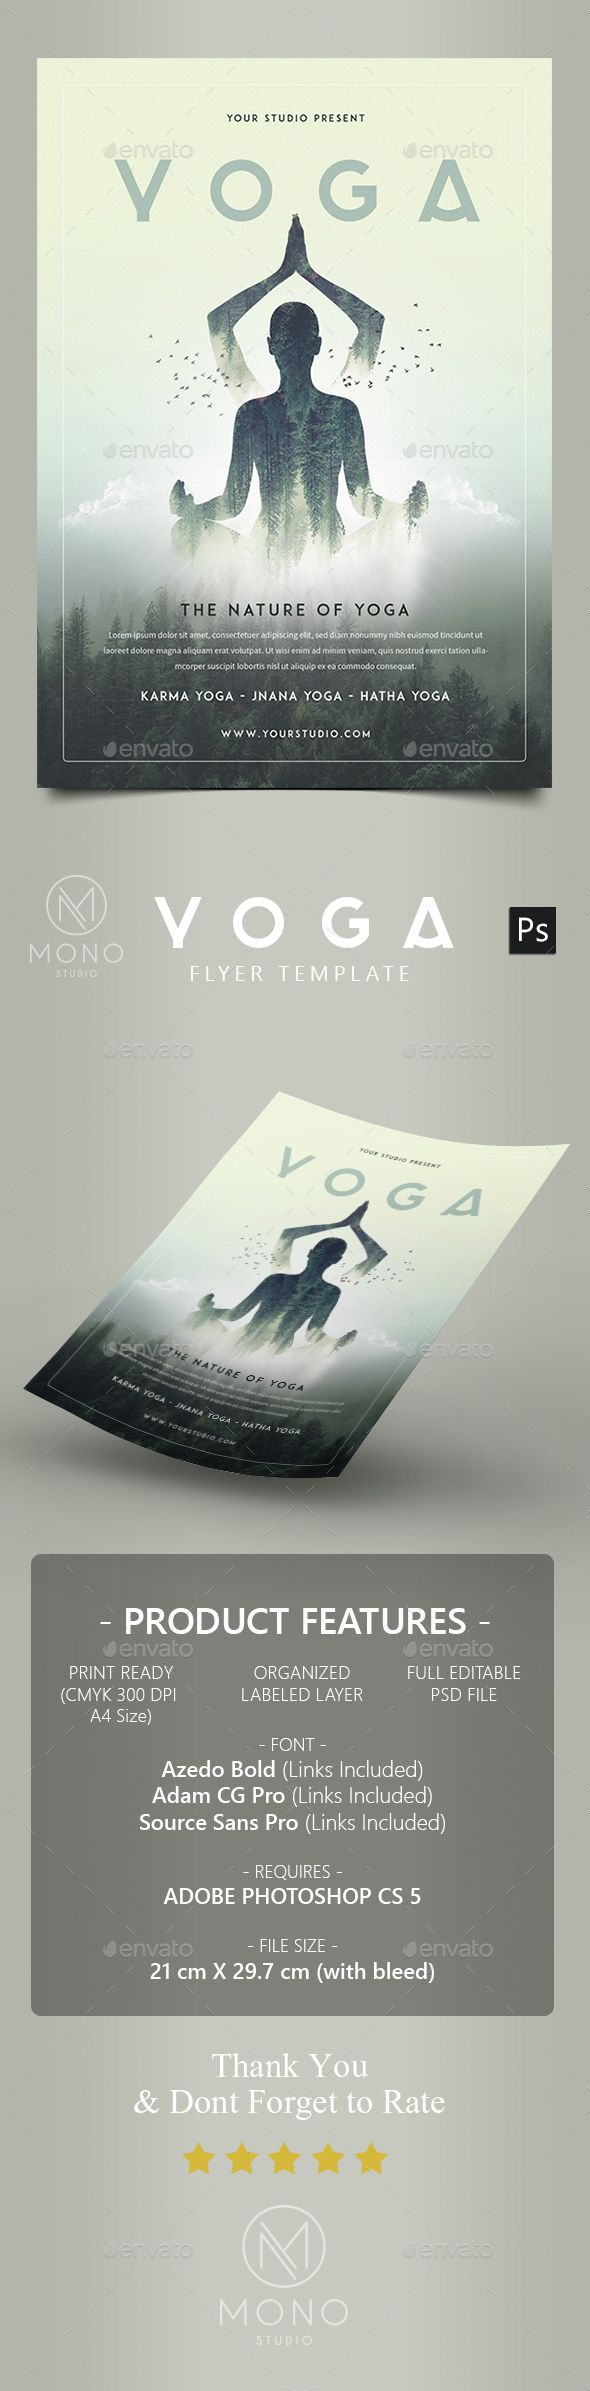 Yoga Flyer — Photoshop PSD #monogrph #simple • Available here → https://graphicriver.net/item/yoga-flyer/14891099?ref=pxcr